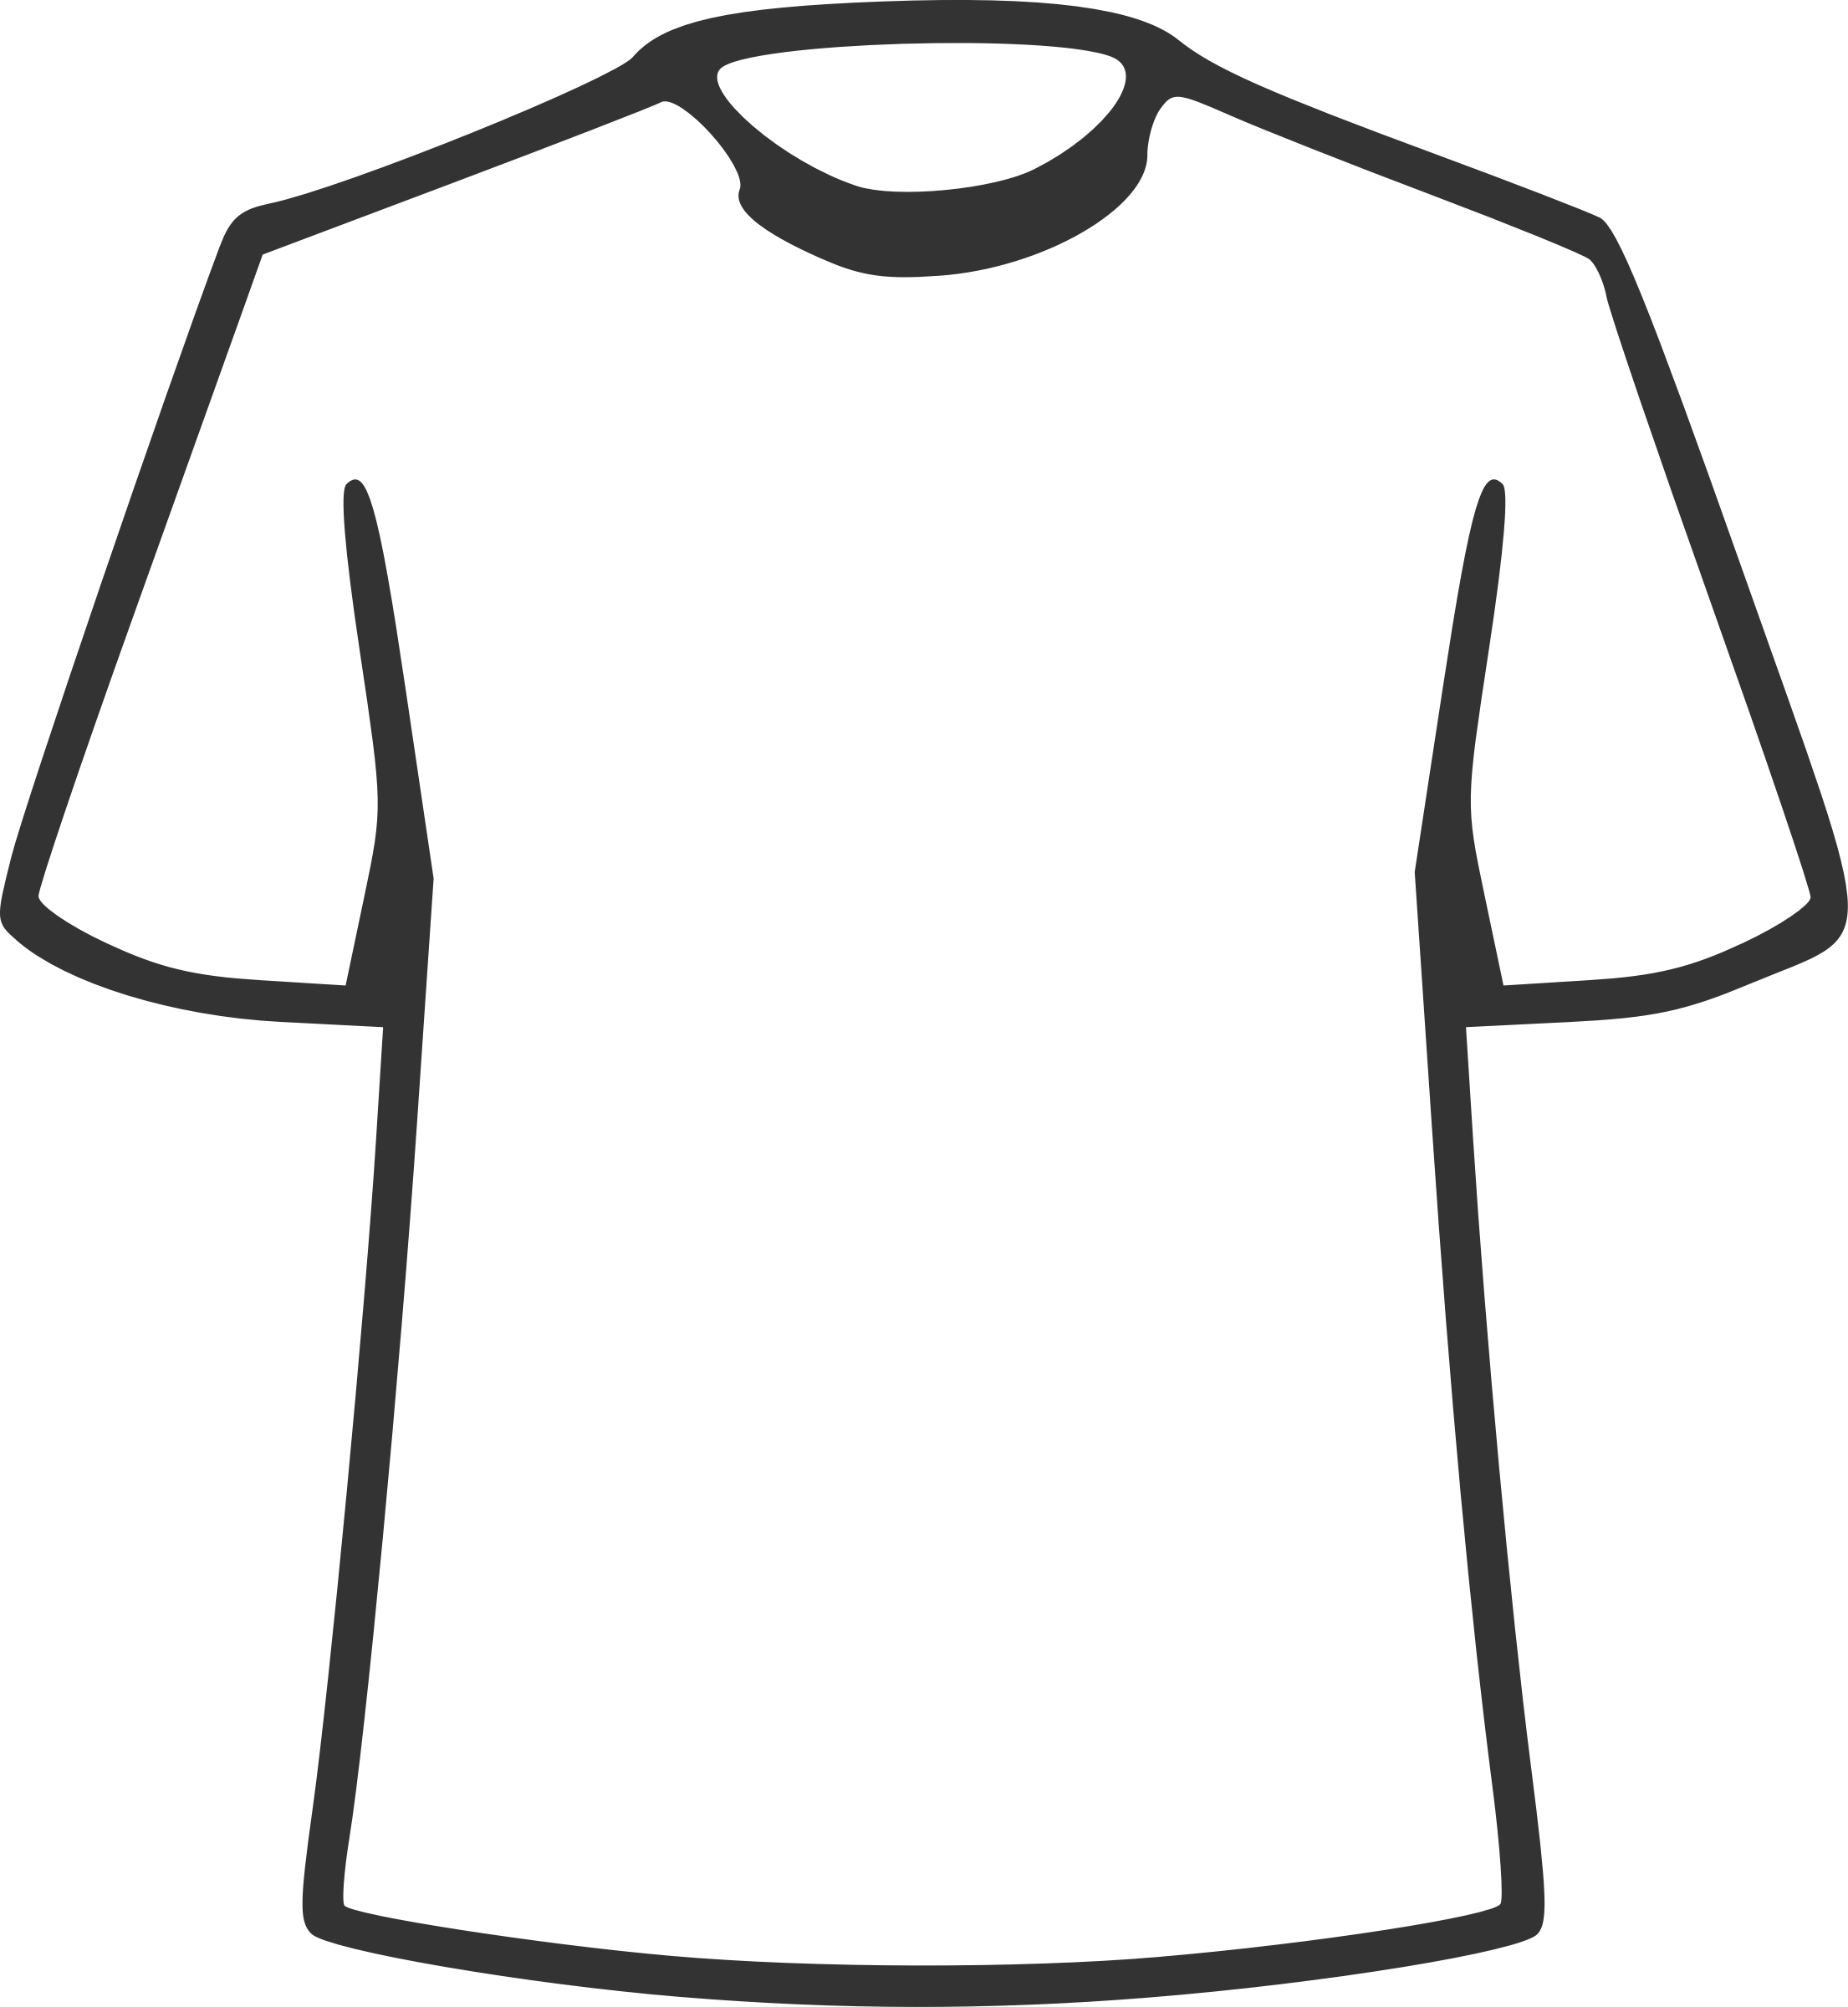 Shirt clipart. Simple big image png